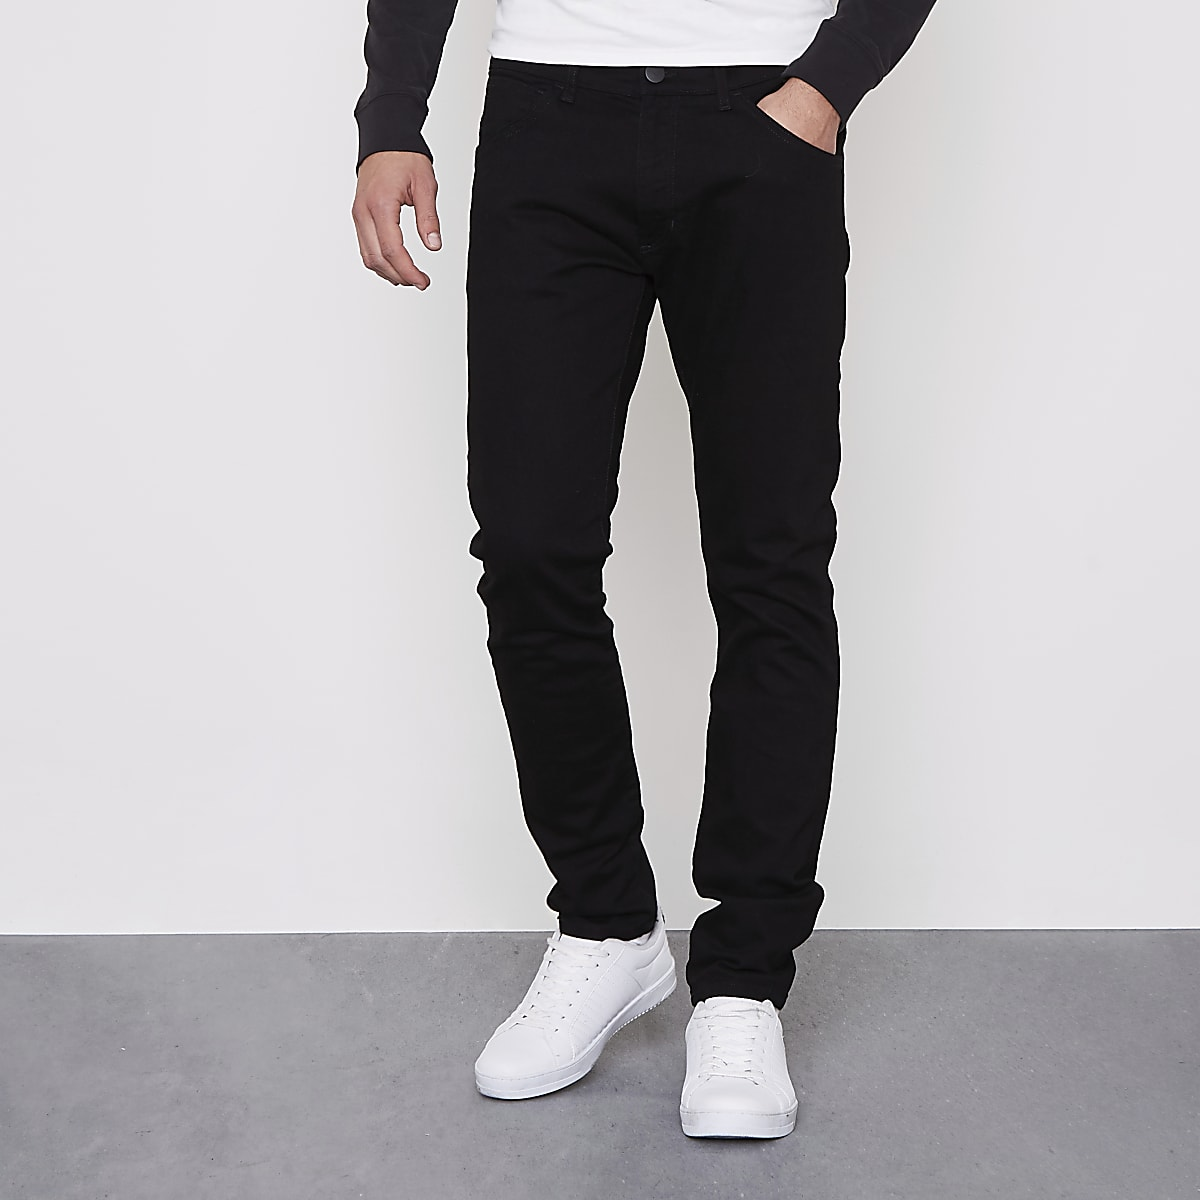 attractive style factory reputable site Wrangler black Bryson skinny fit jeans